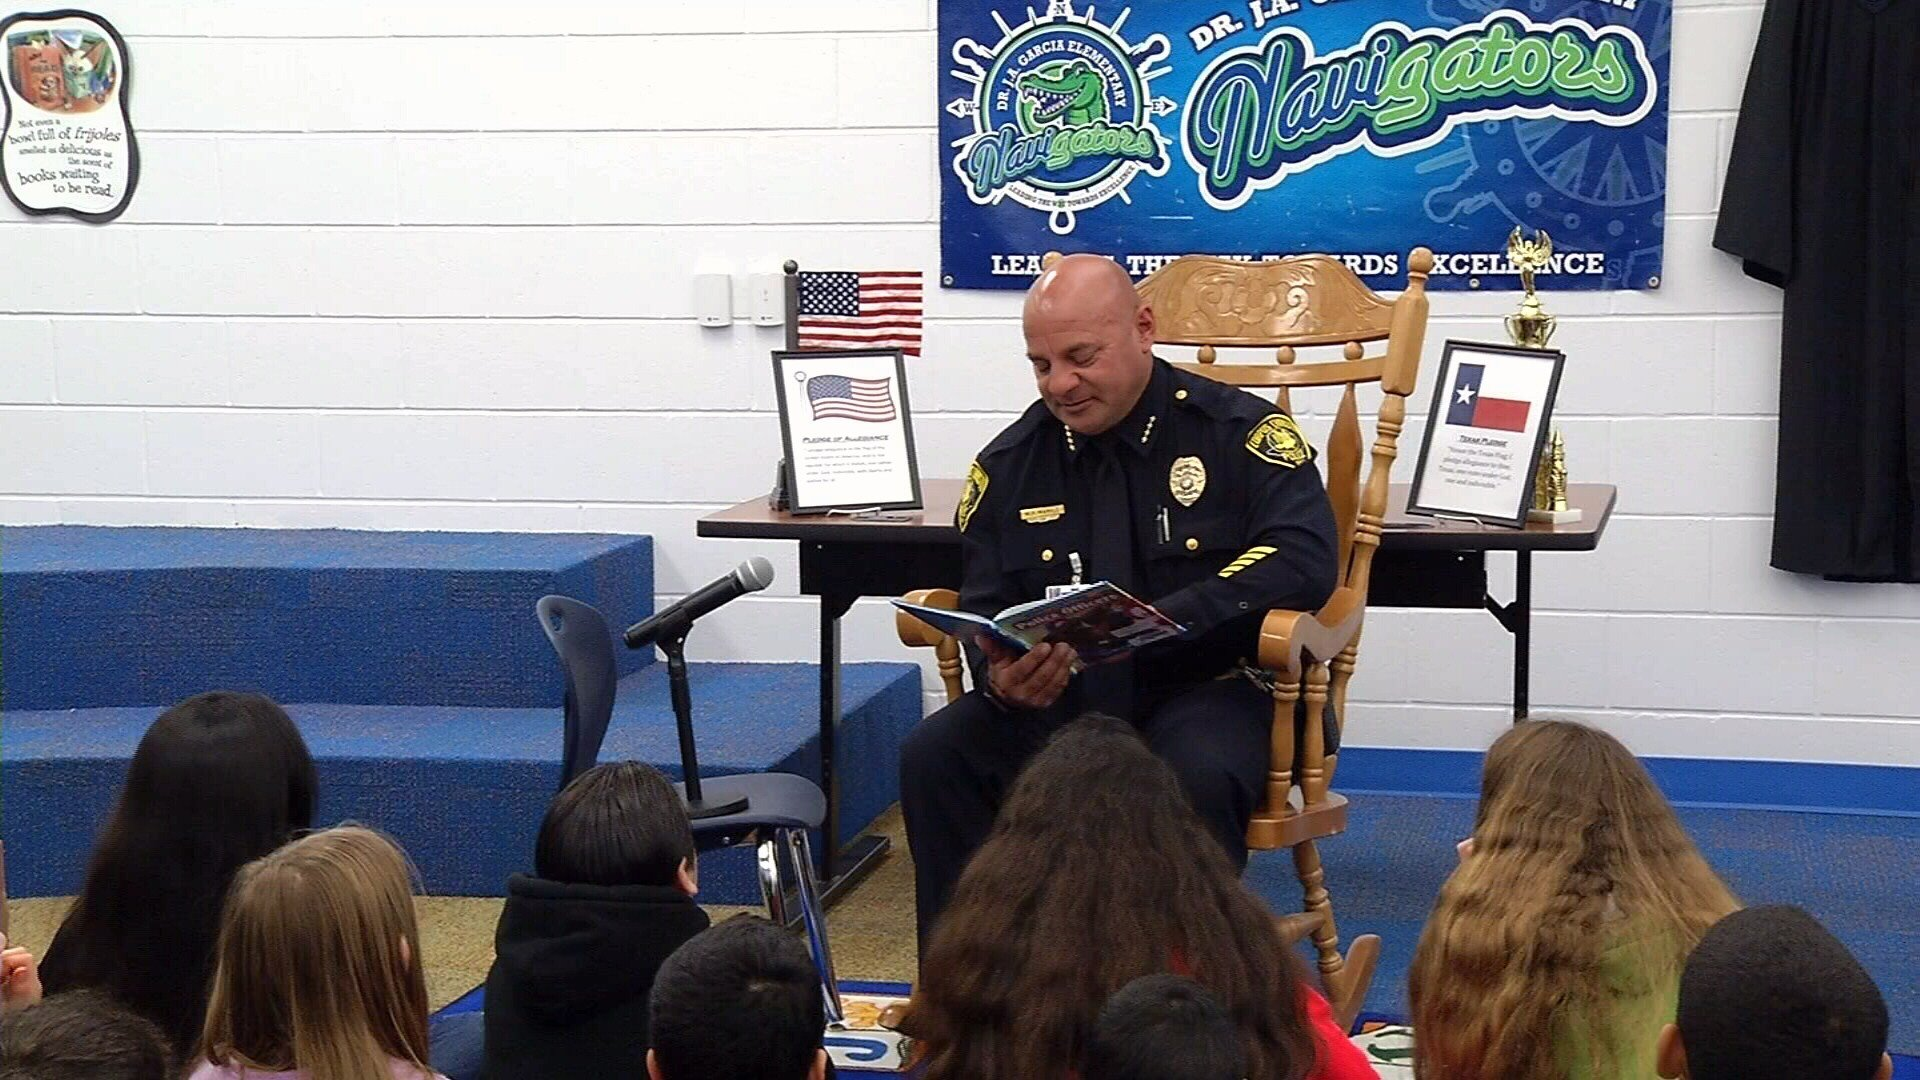 Corpus Christi Police Chief Mike Markle read to several students at Dr. J.A. Garcia Elementary Thursday morning.